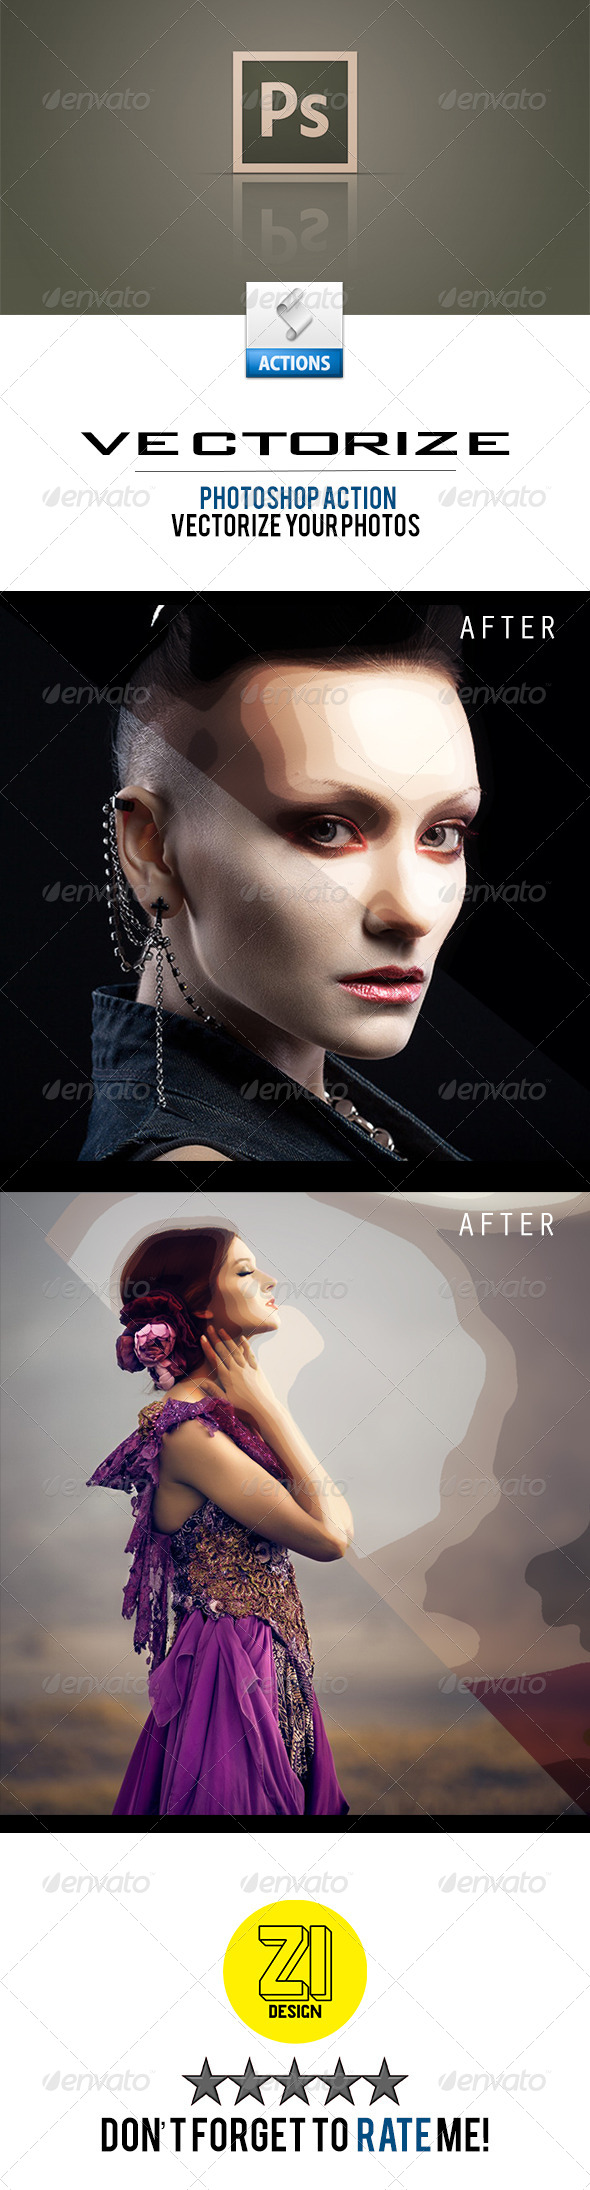 GraphicRiver Vectorize Photoshop Action 8755947